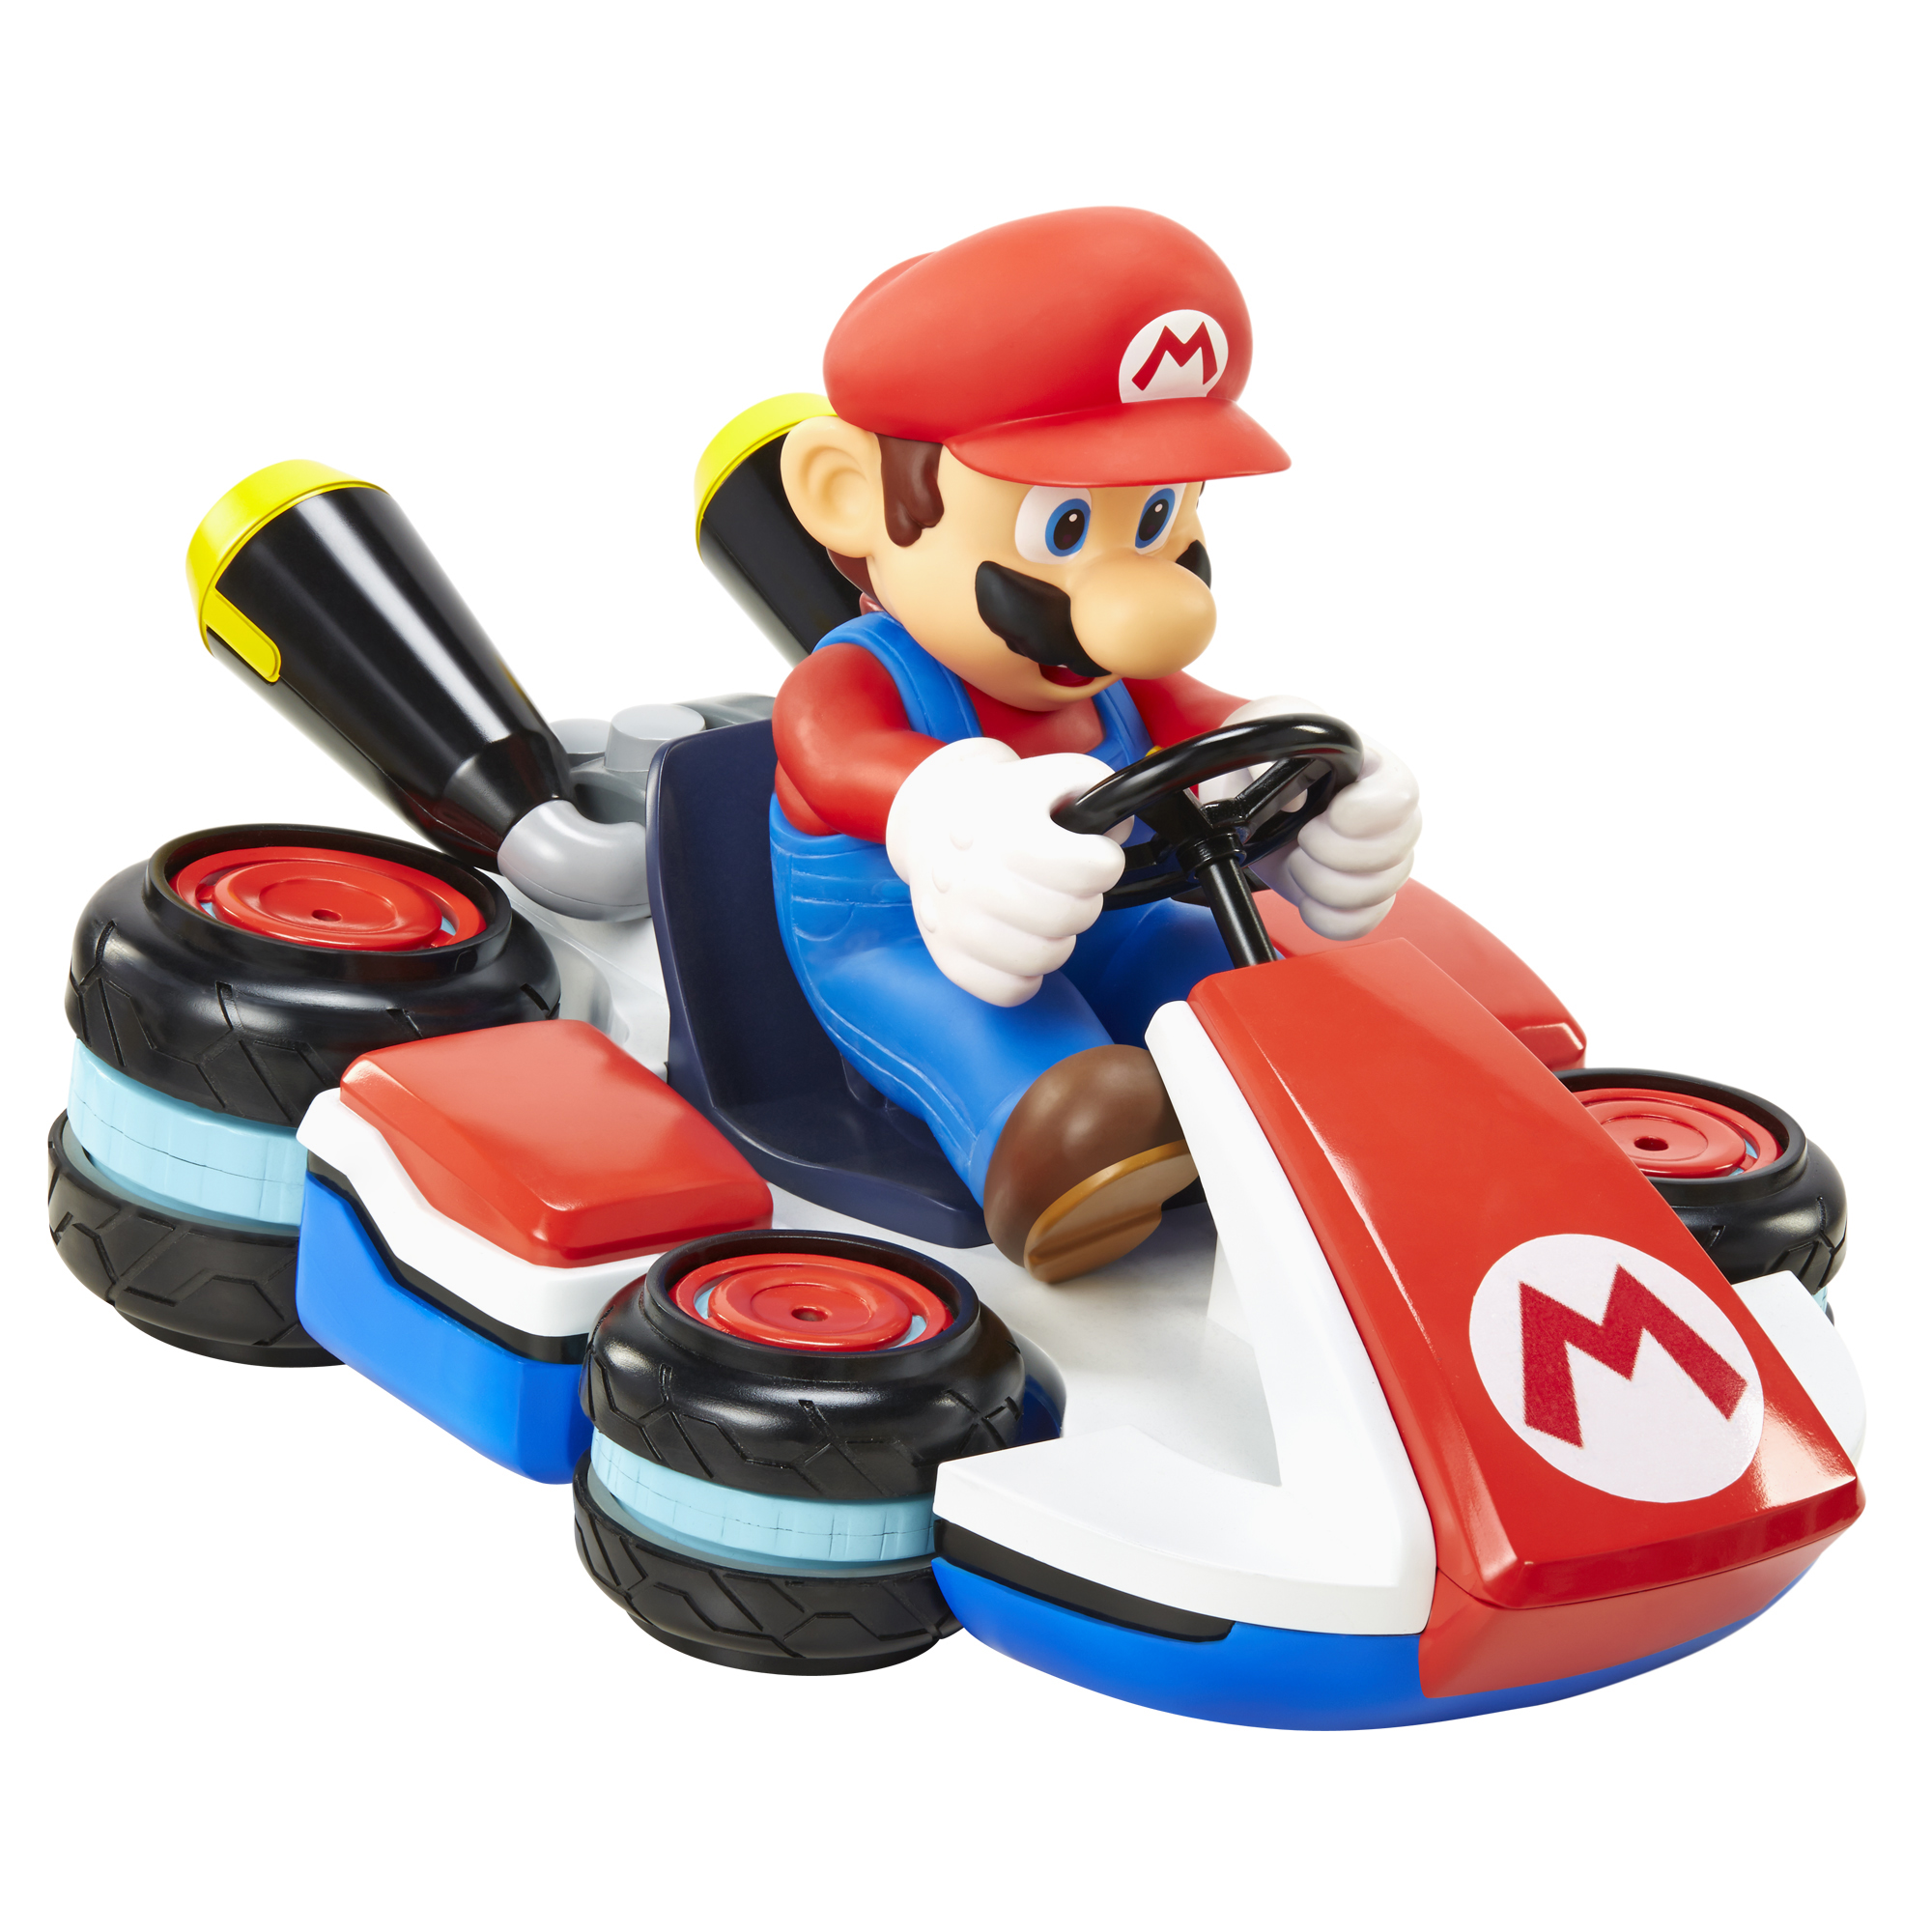 Mario Remote Control Race Car